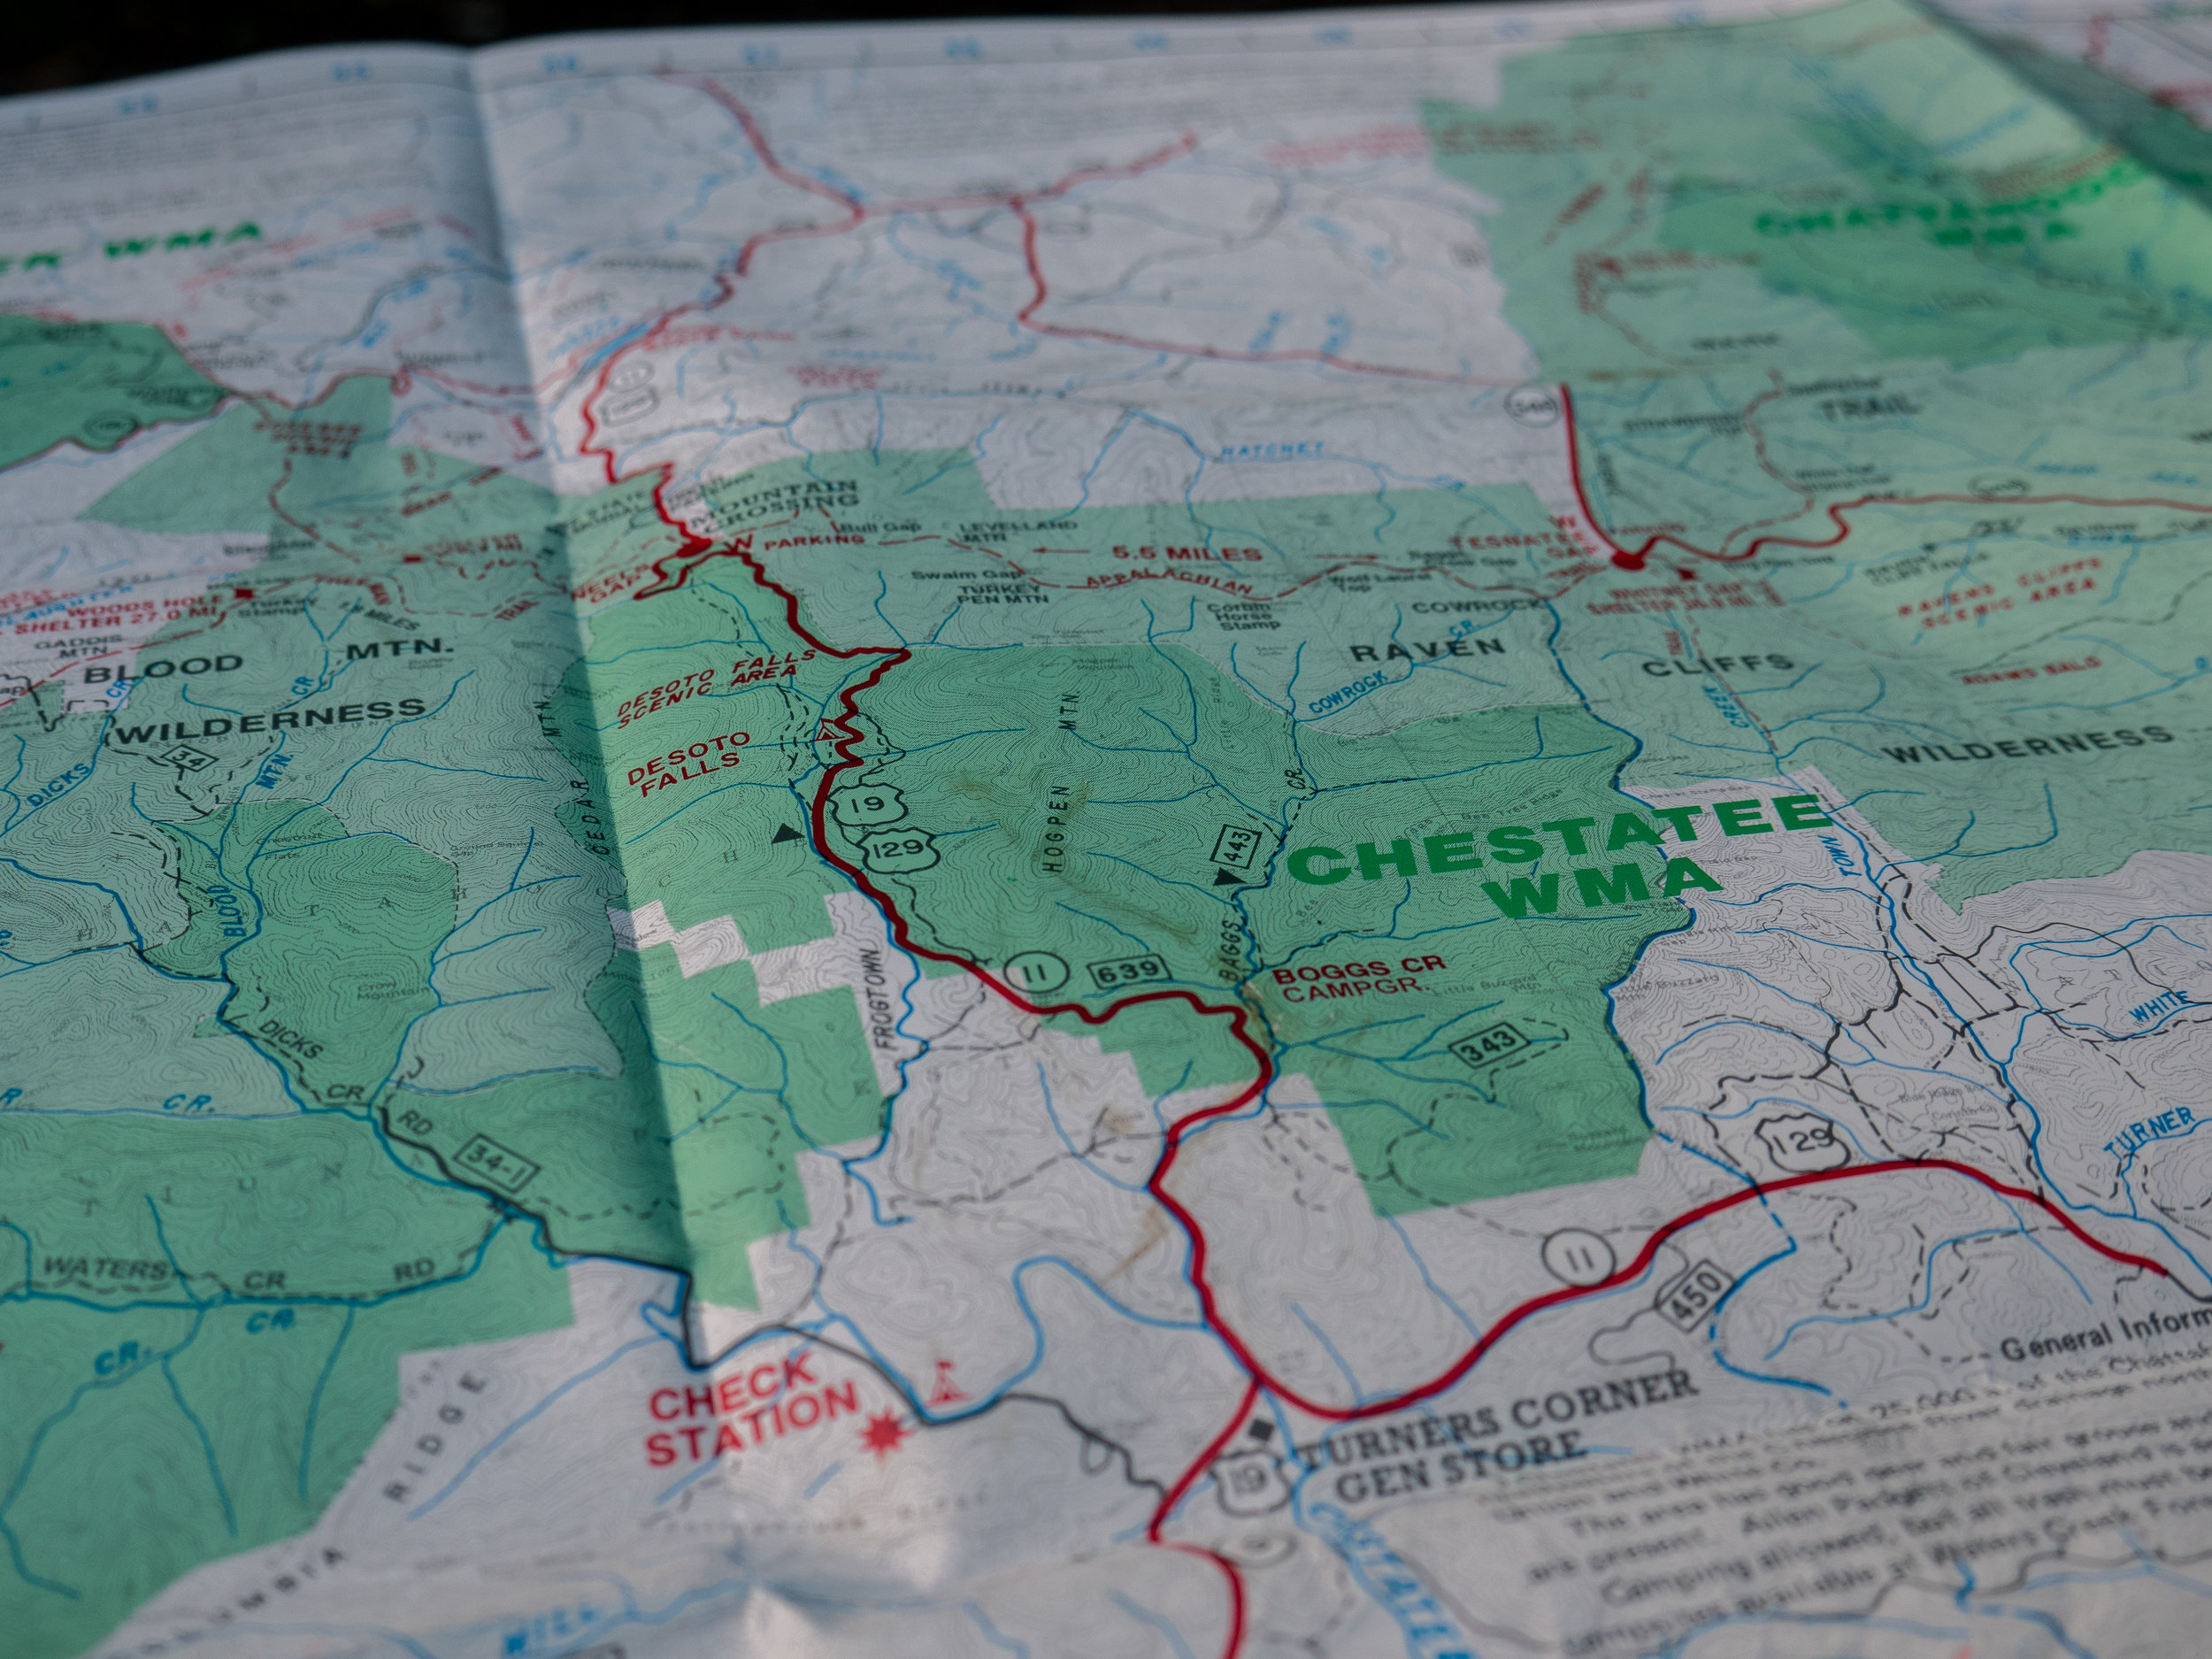 The Chestatee WMA is located near Cleveland, Georgia, in the foothills of the Appalachian Mountains.